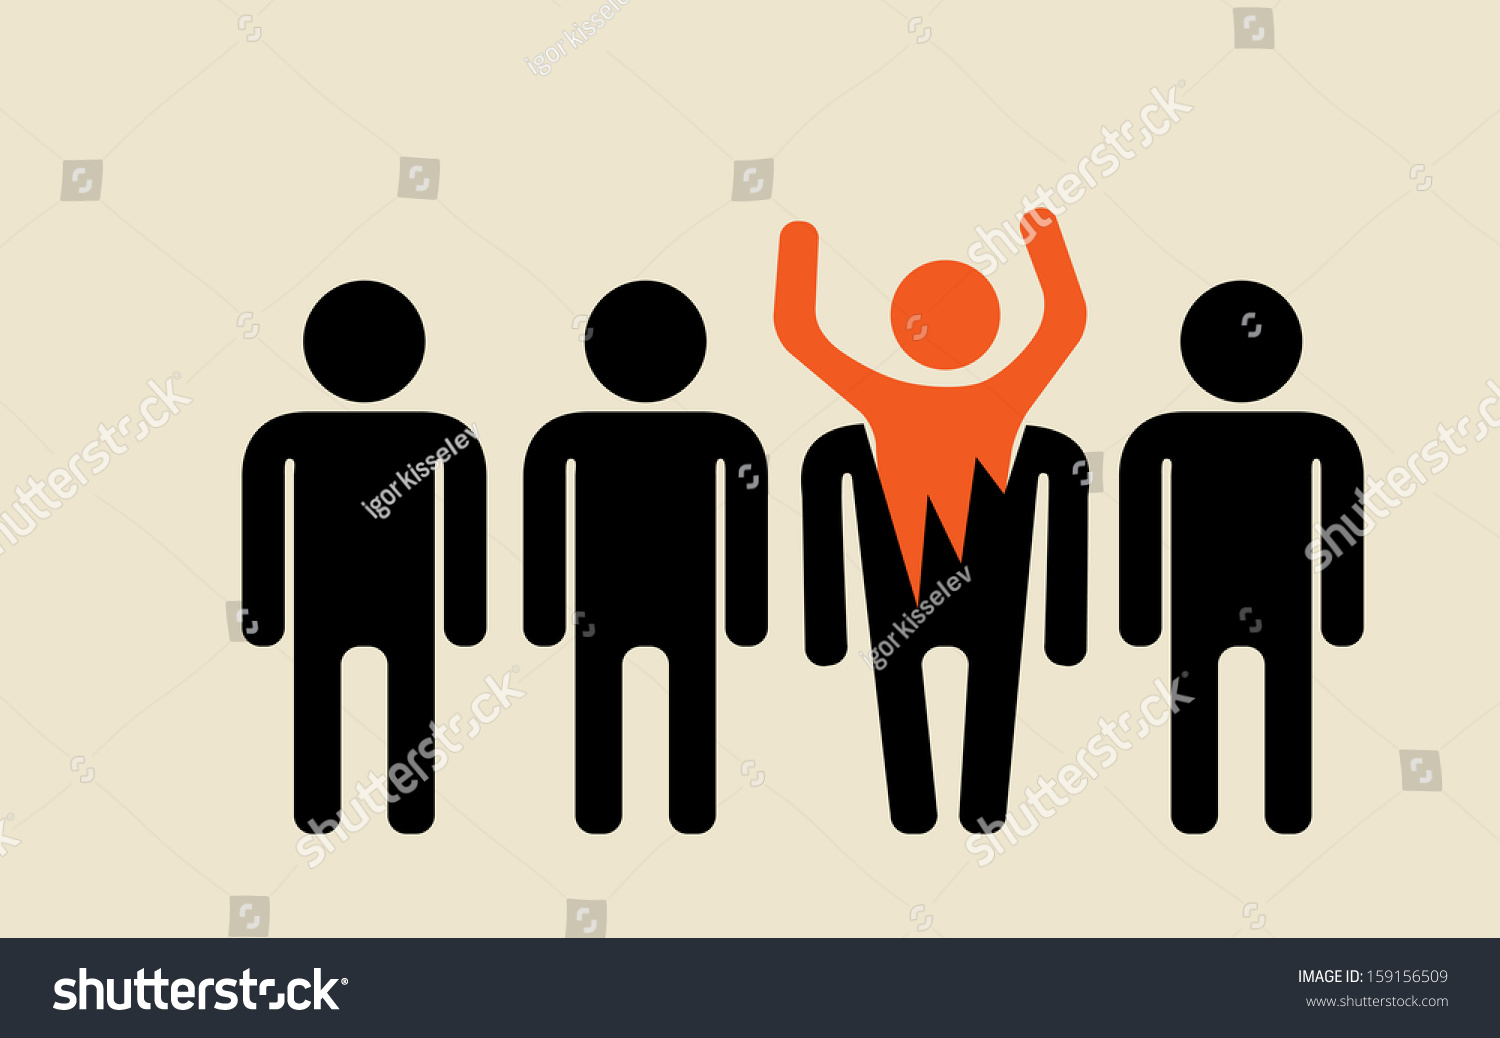 feel free be different crowd majority stock vector 159156509